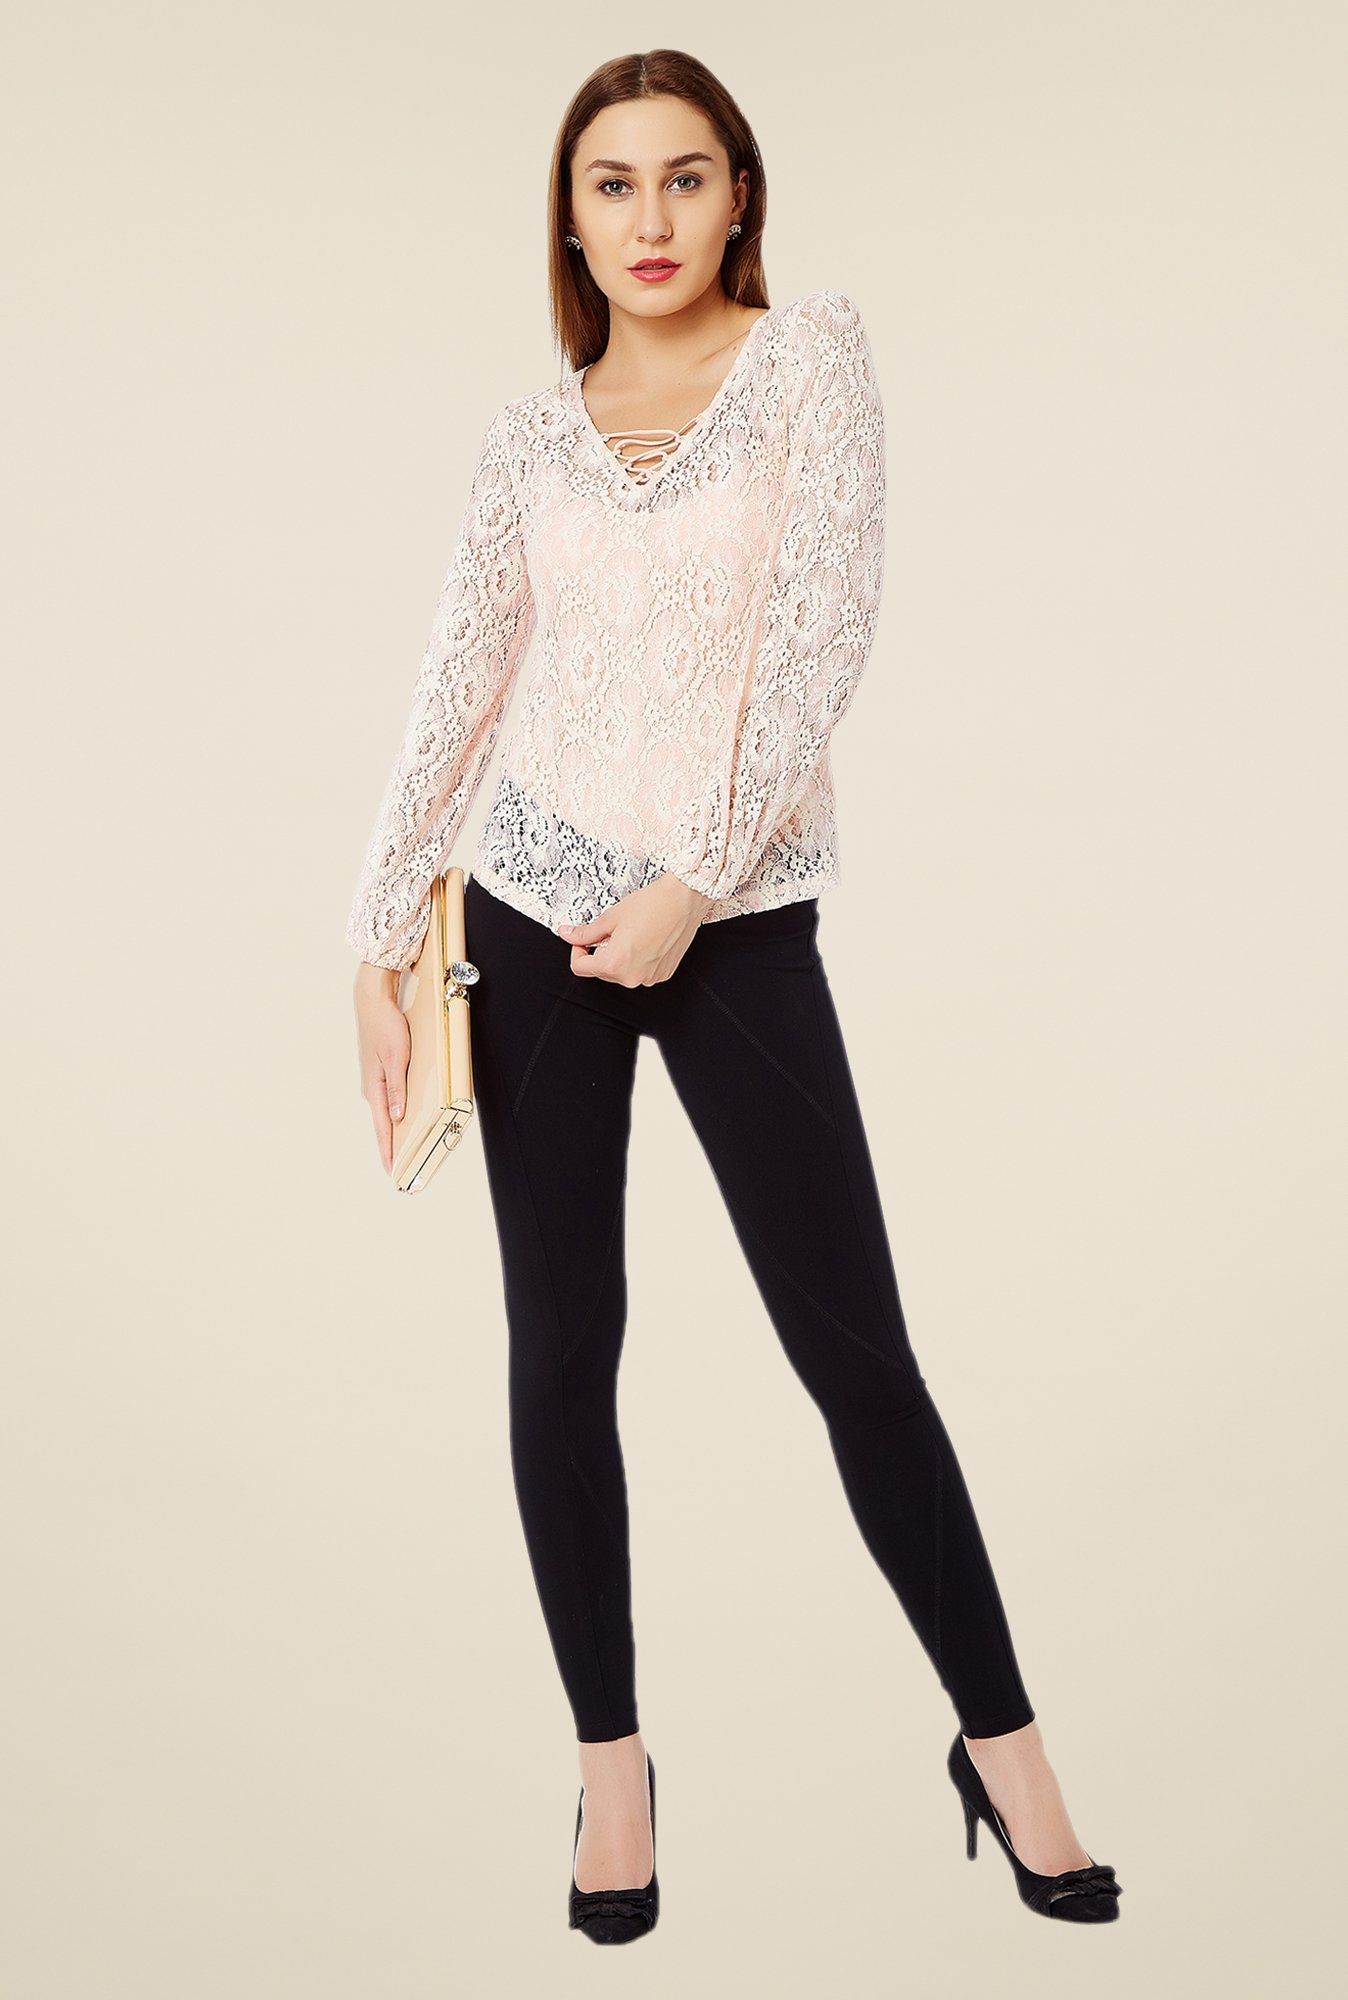 Avirate Pink Lace Top